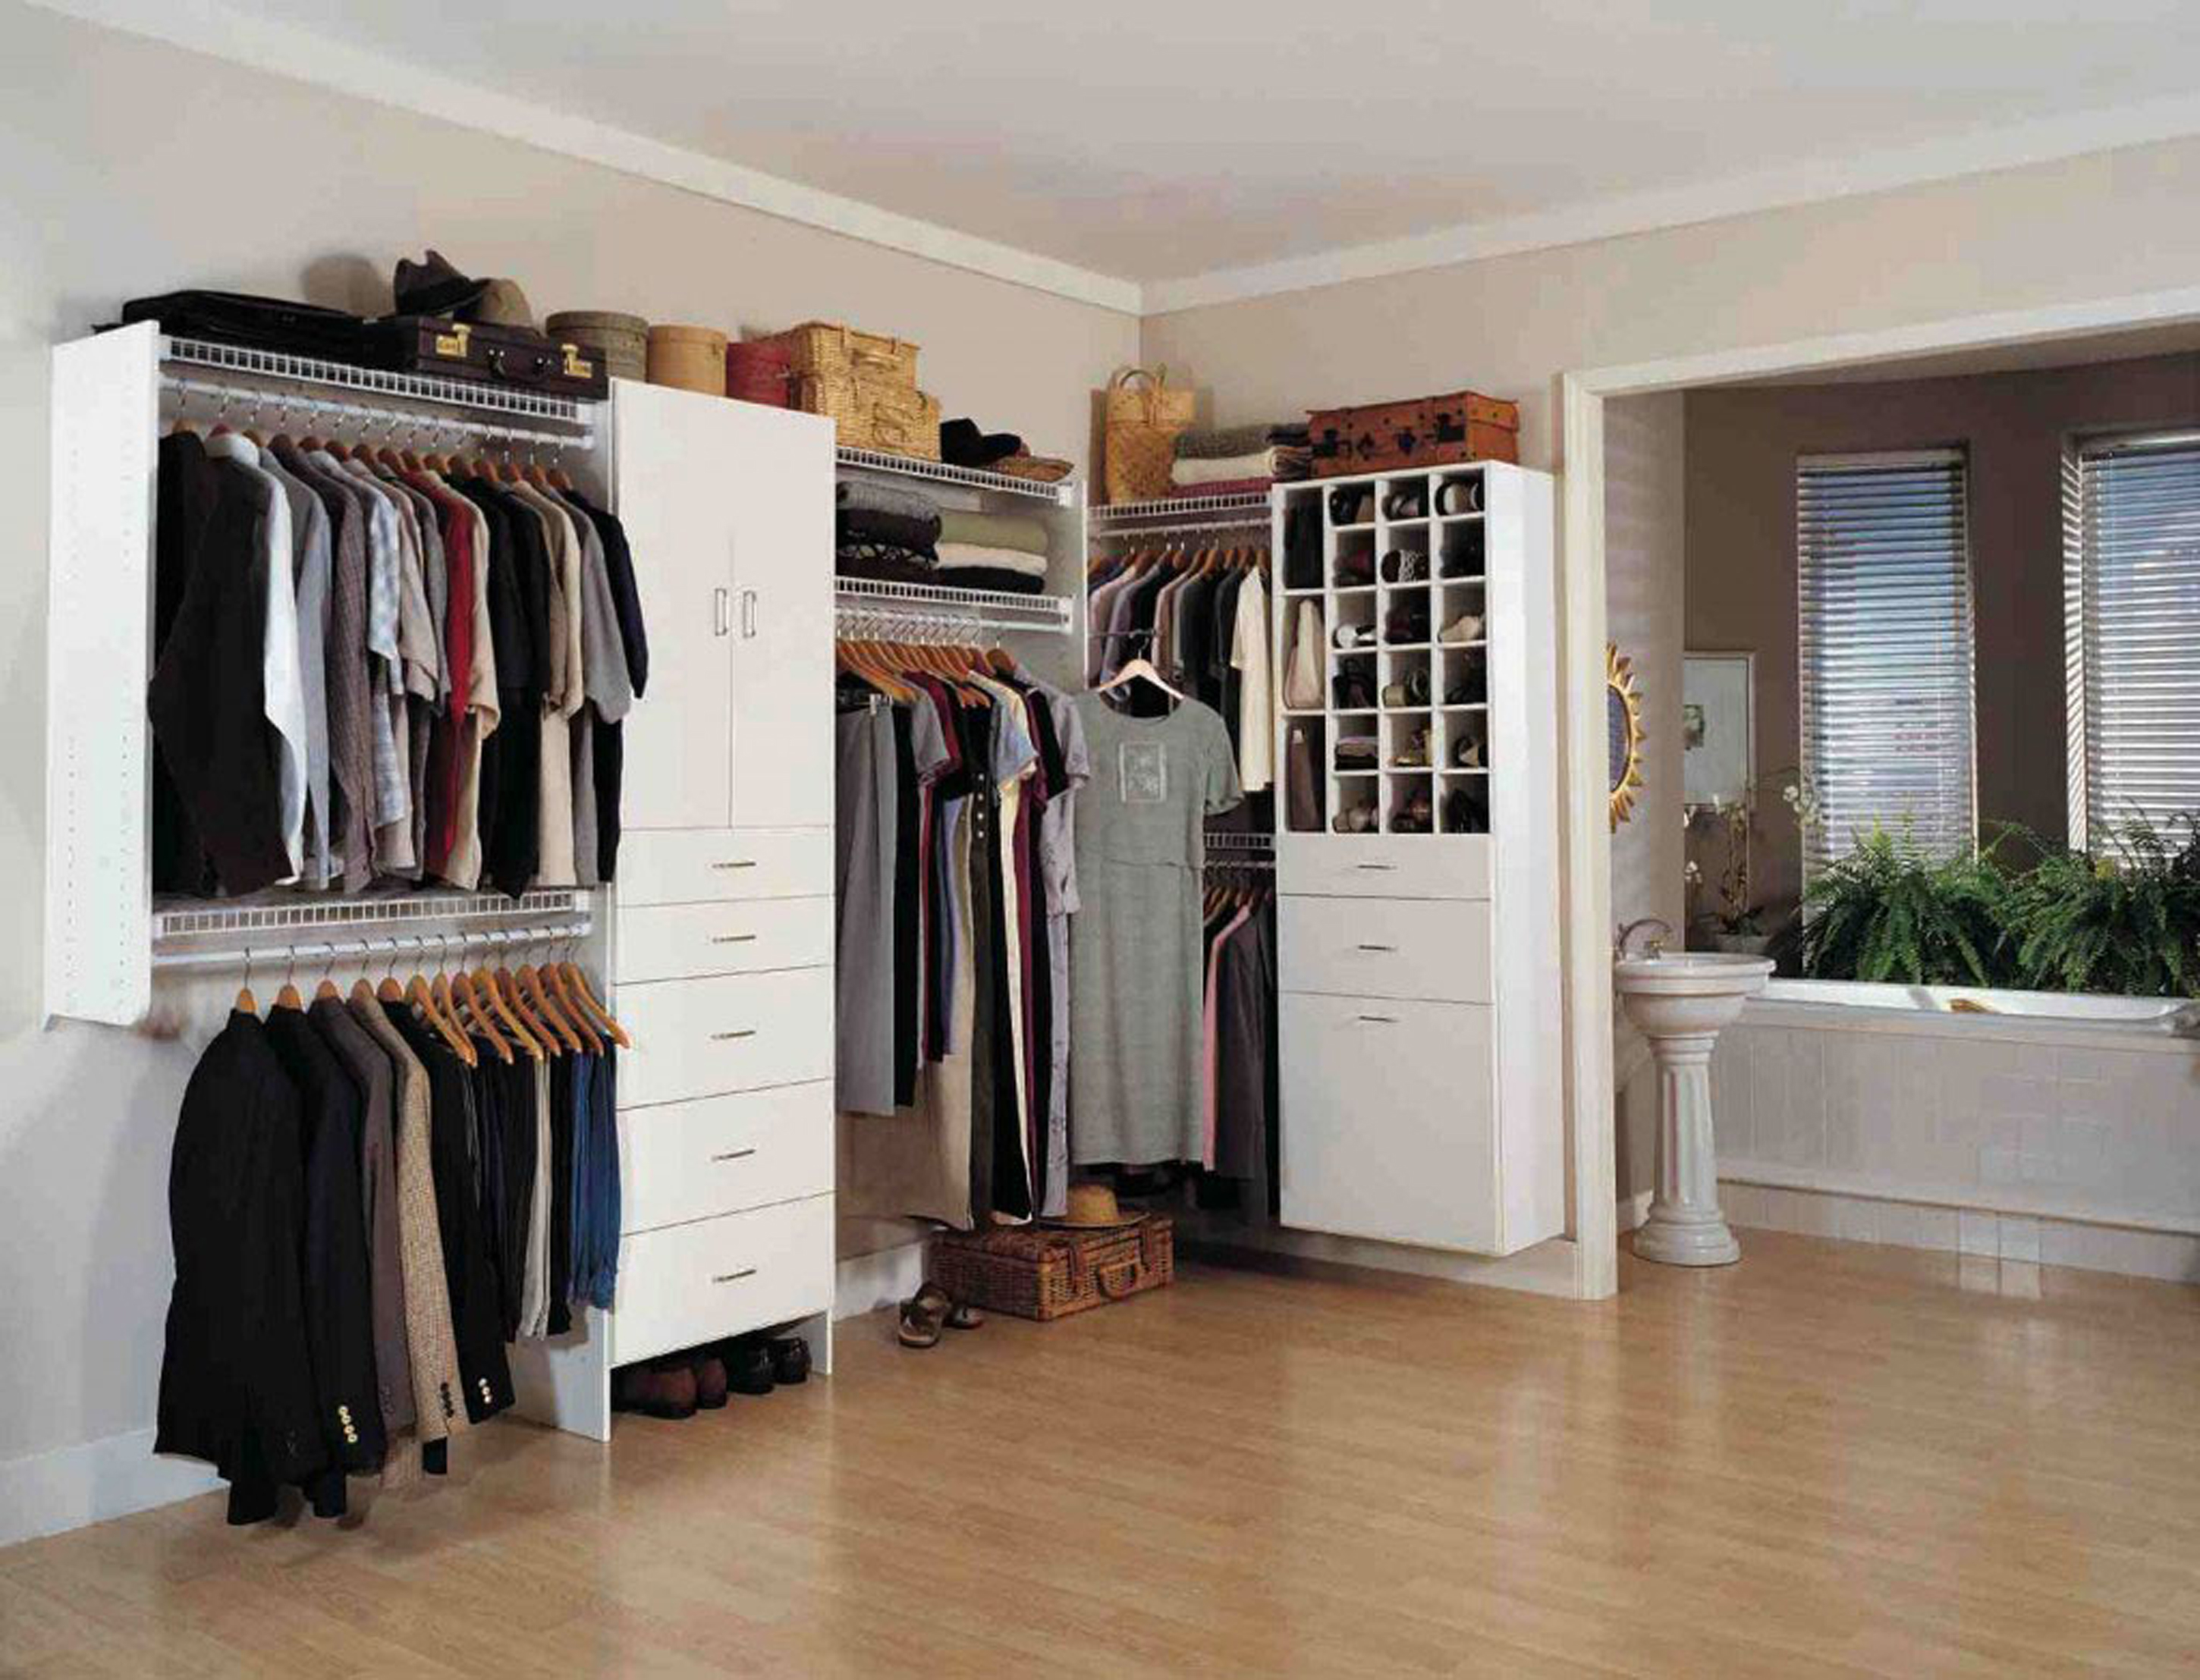 20 stunning Farmhouse Storage & Closets Design